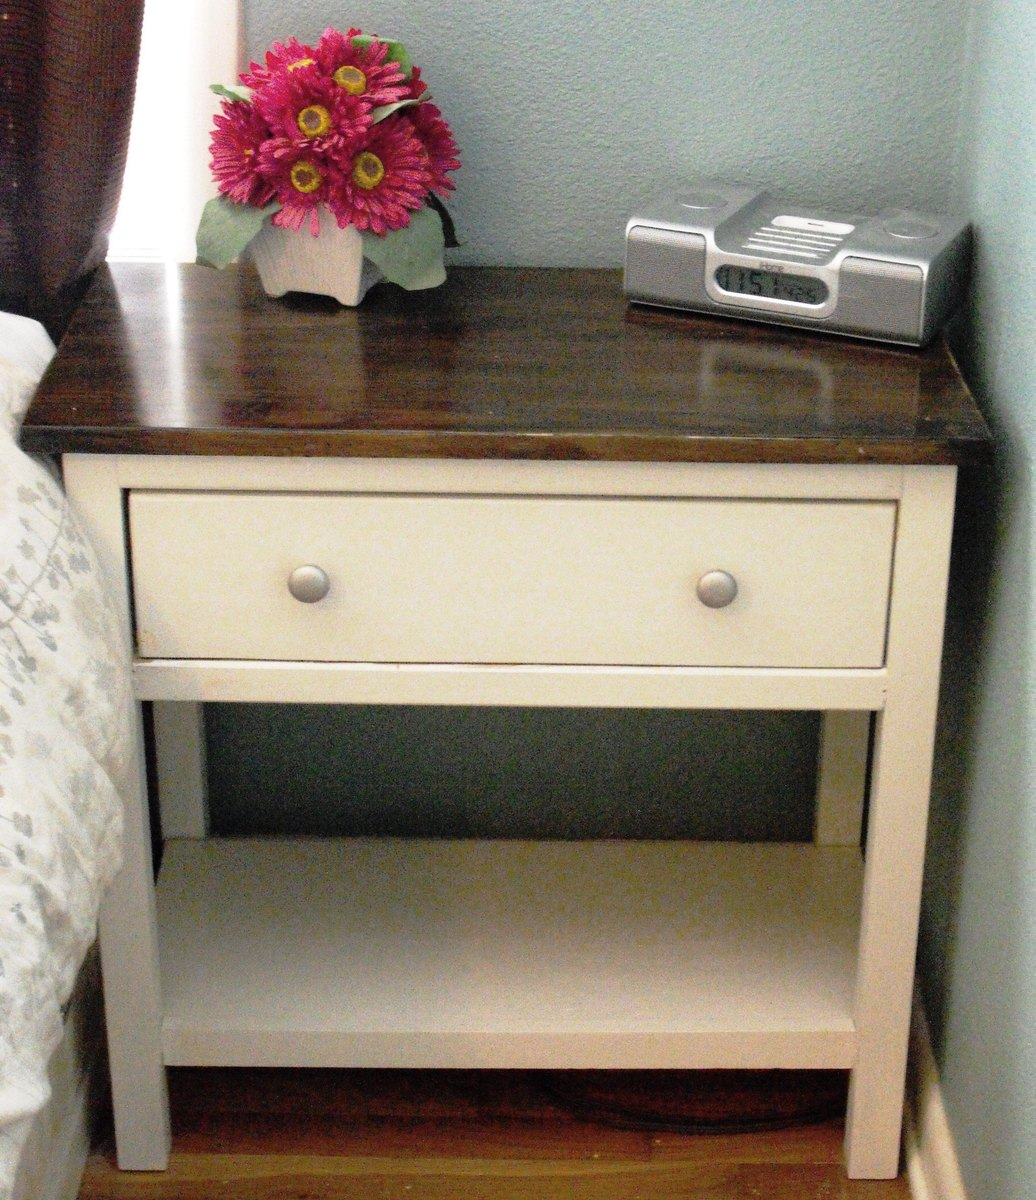 ana white | farmhouse bedside table - diy projects How to Build a Bedside Table with Drawers